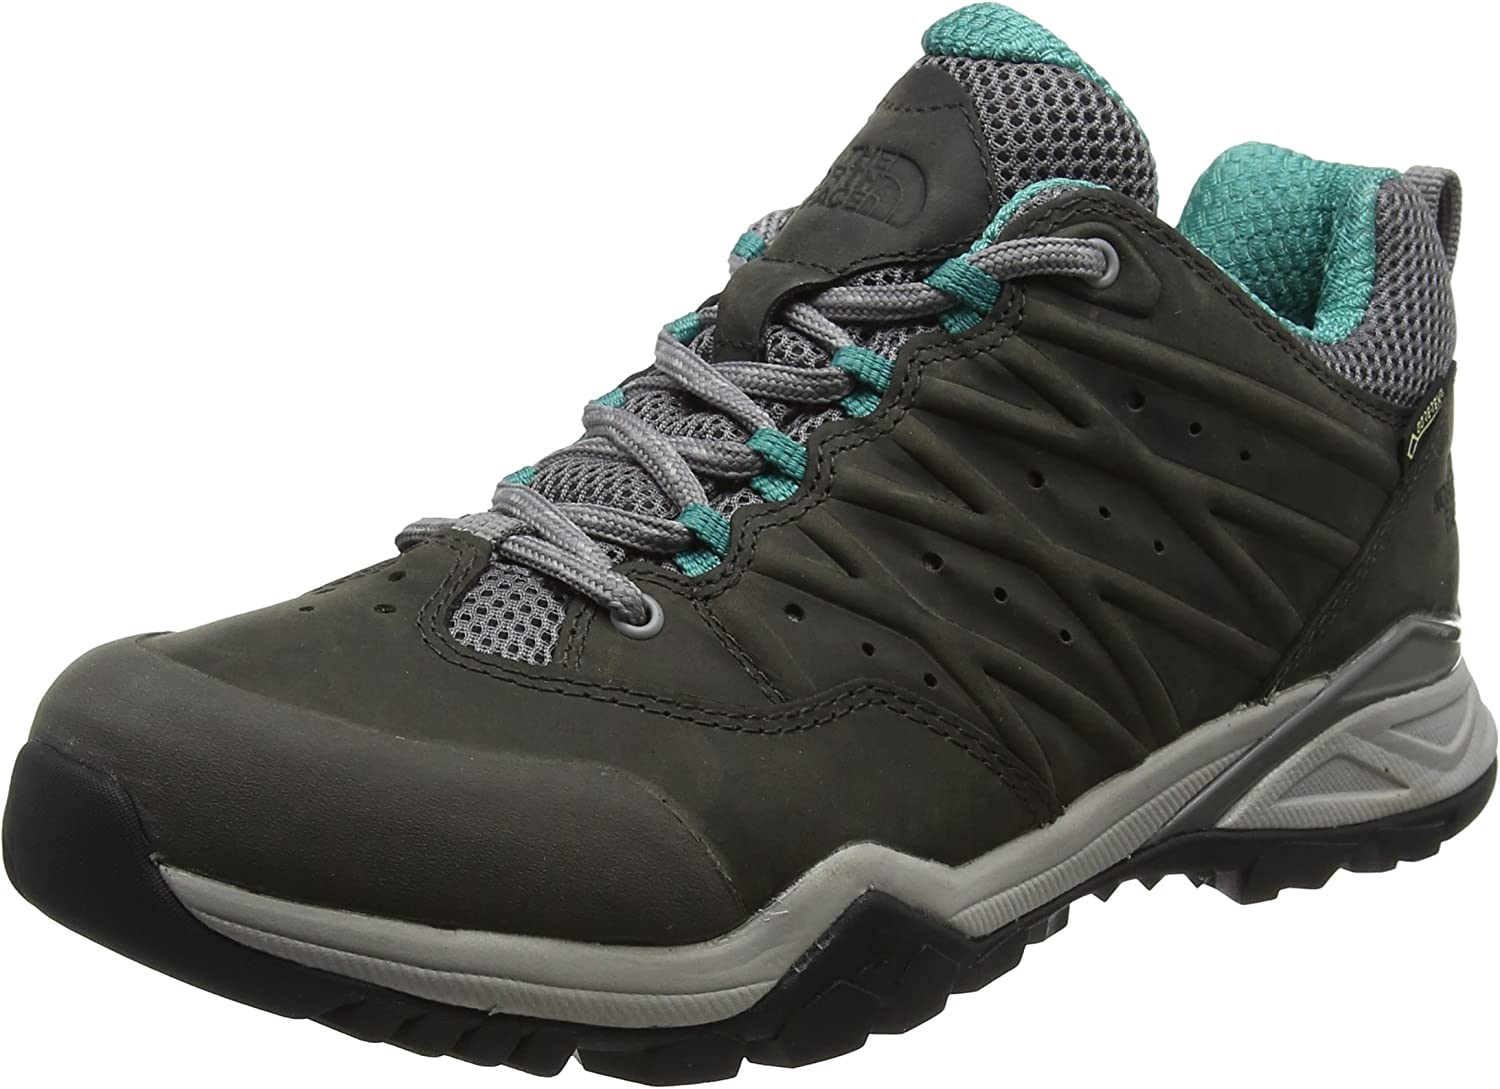 The North Face Women's Low Rise Hiking Shoe